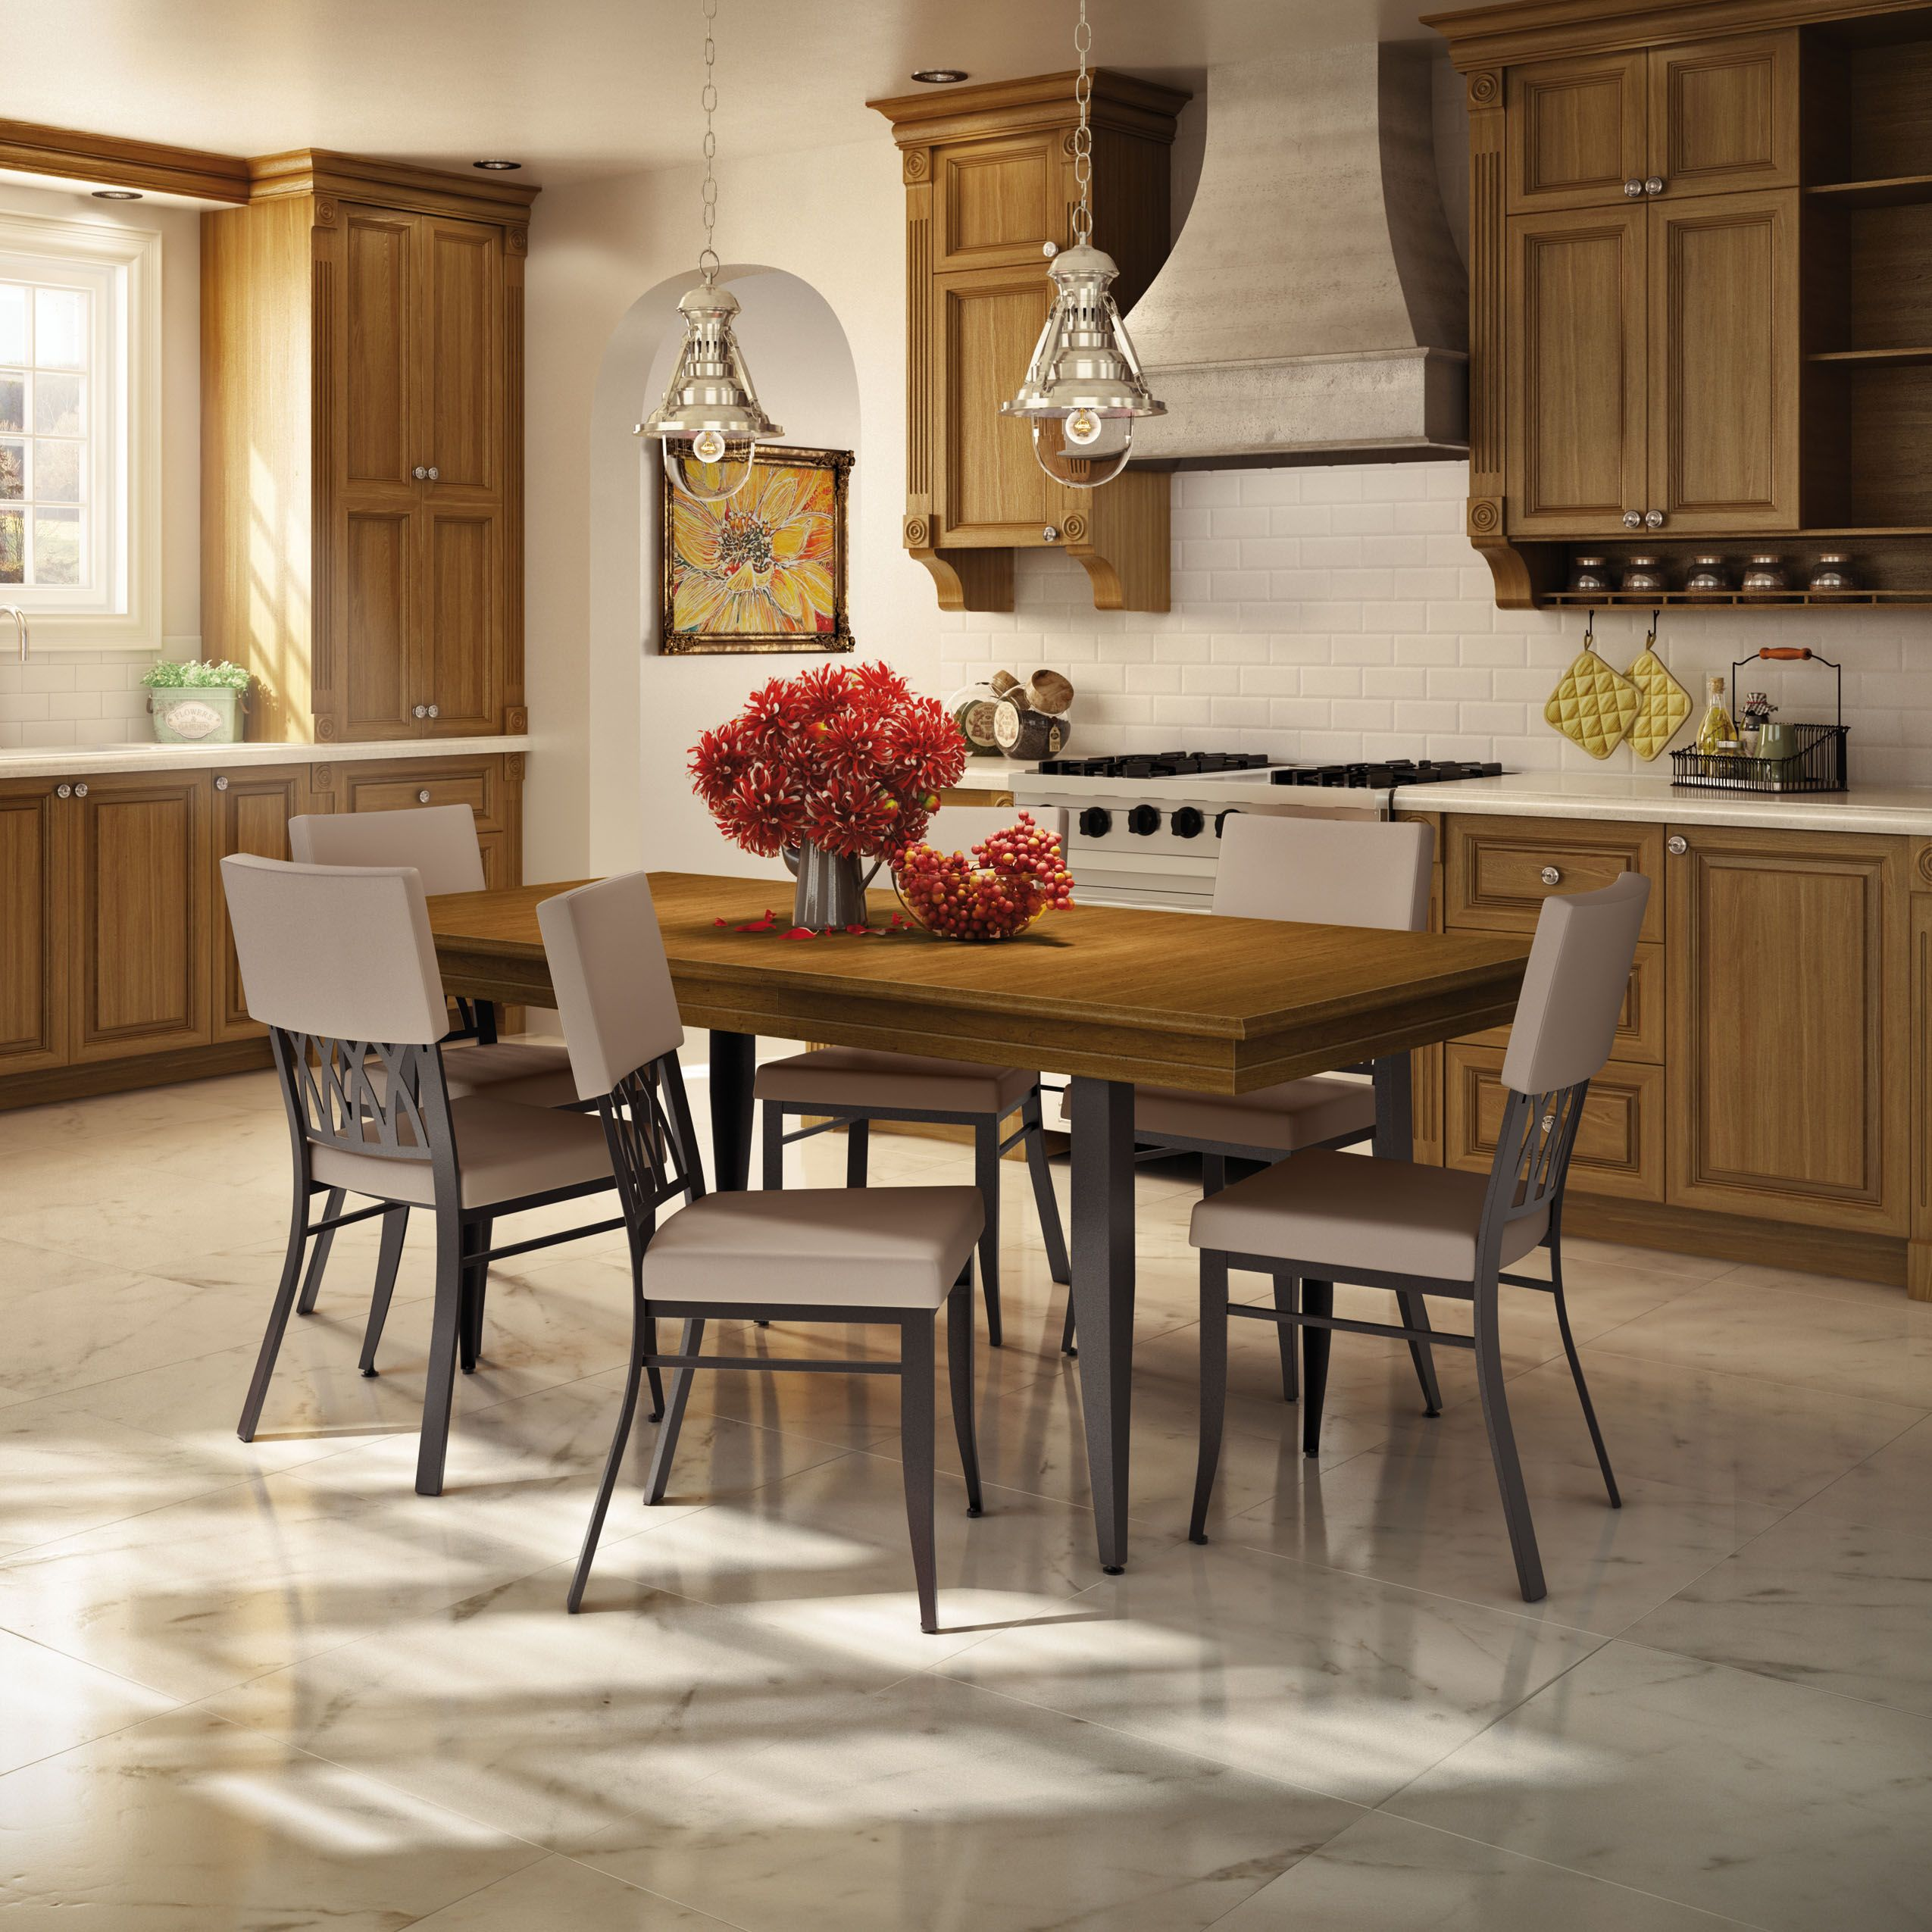 Attirant Amisco Furniture Canadian Made Quality Steel Furniture Available At  Smittyu0027s Fine Furniture